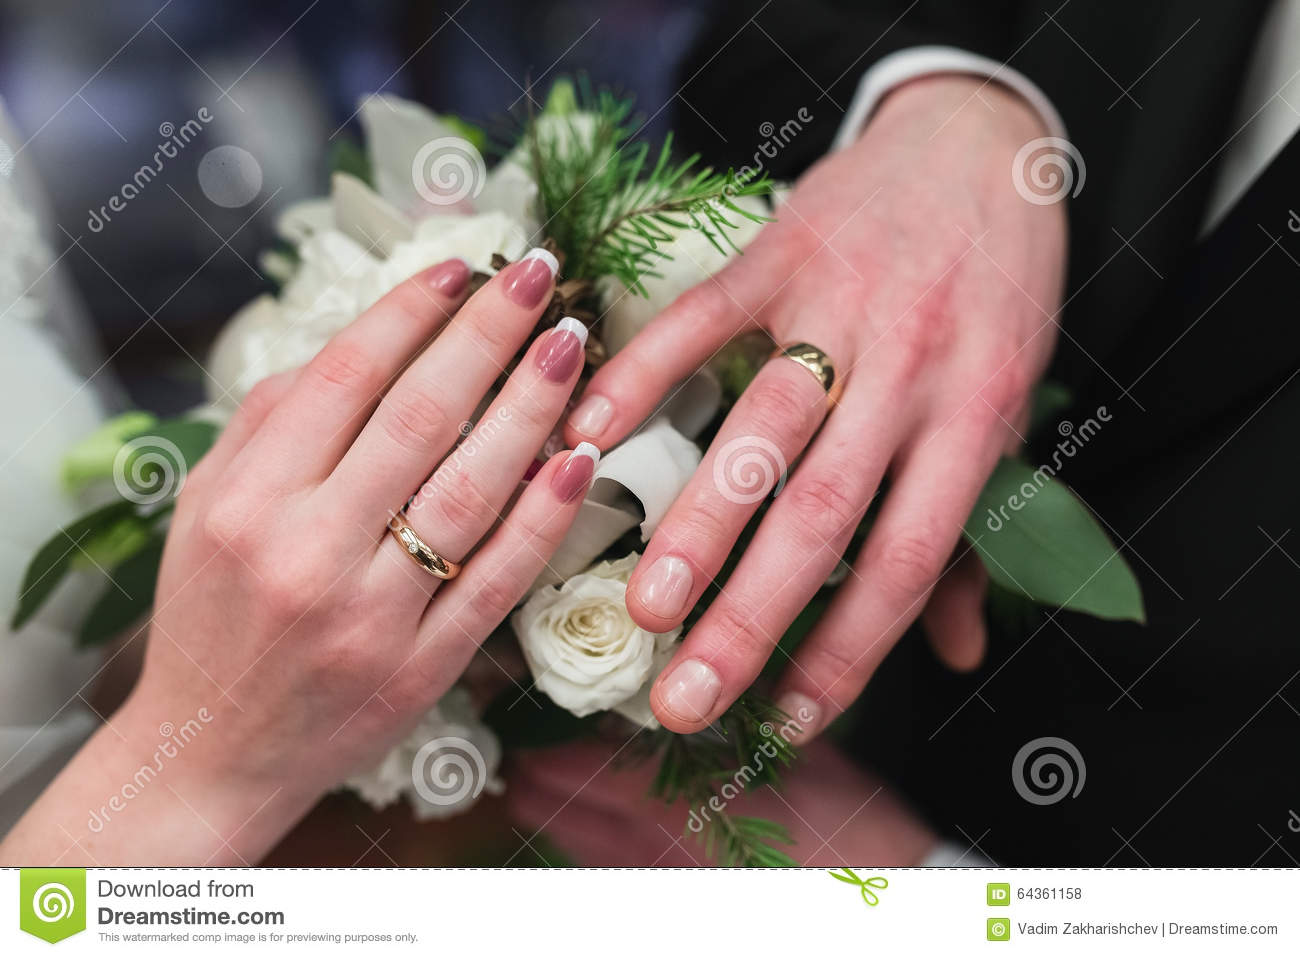 Wedding Rings On The Hands Of The Newlyweds. Stock Photo - Image of ...